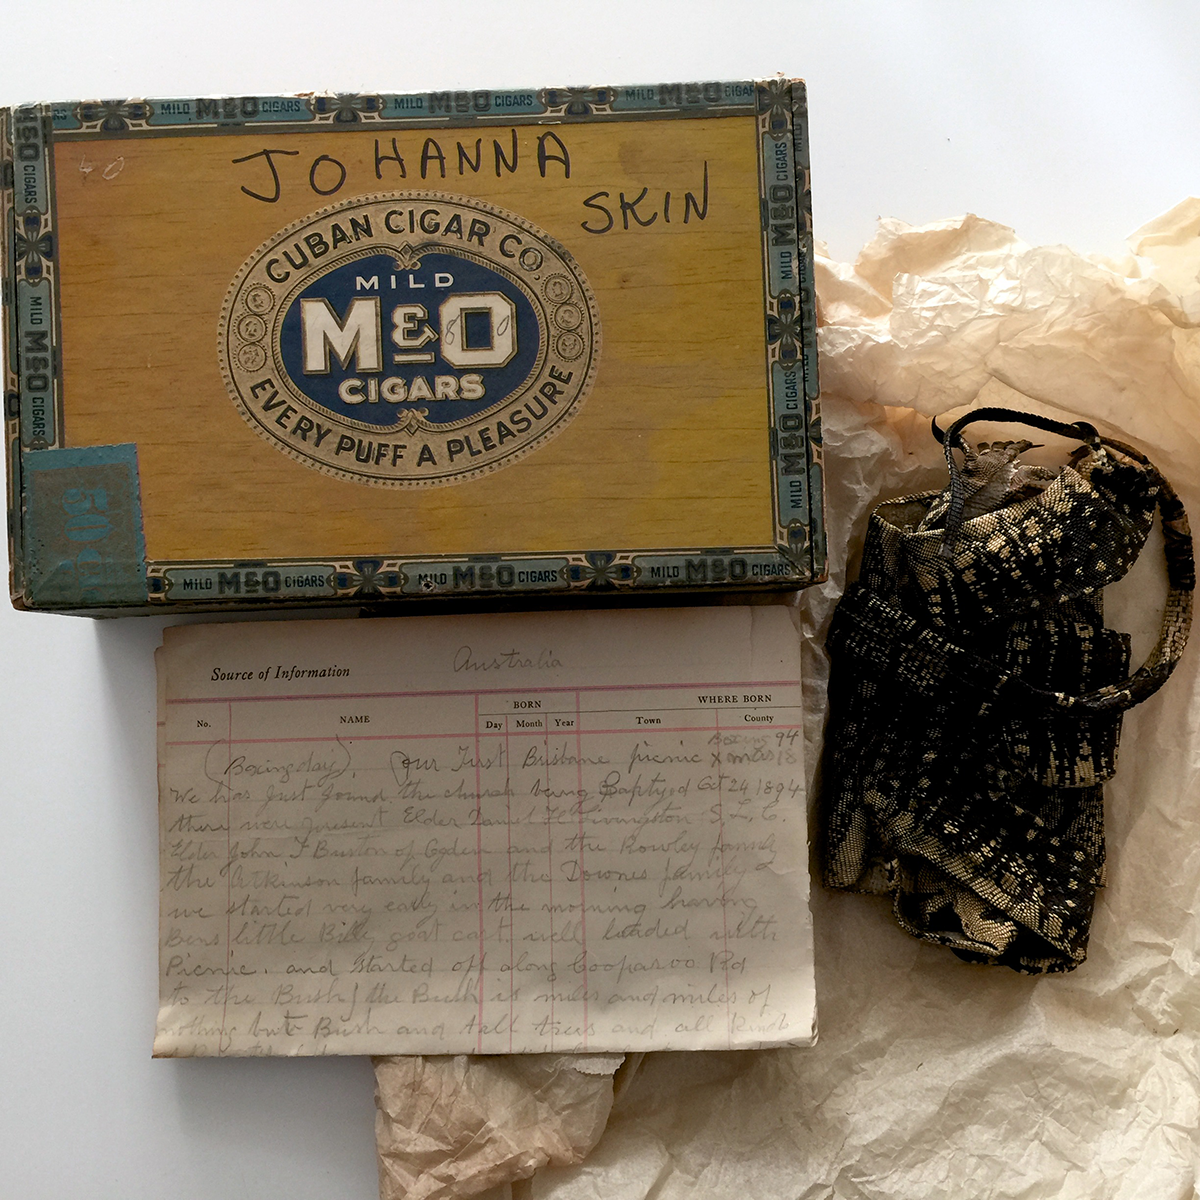 A cigar box, a letter and the goanna skin.